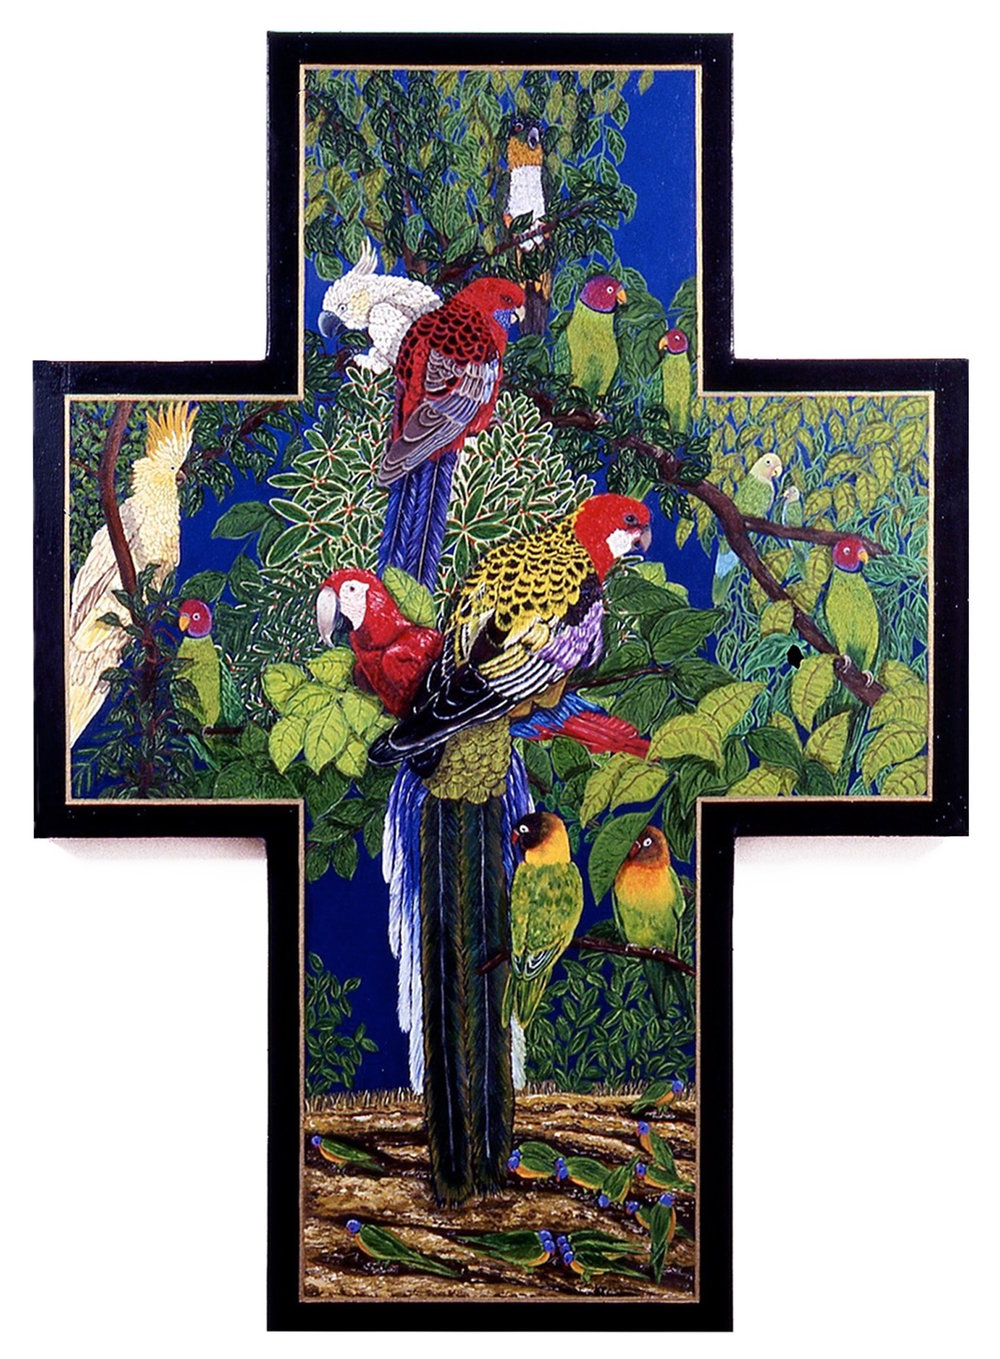 Endangered Birds, oil on shaped canvas, 44-1/2x32 (1995)